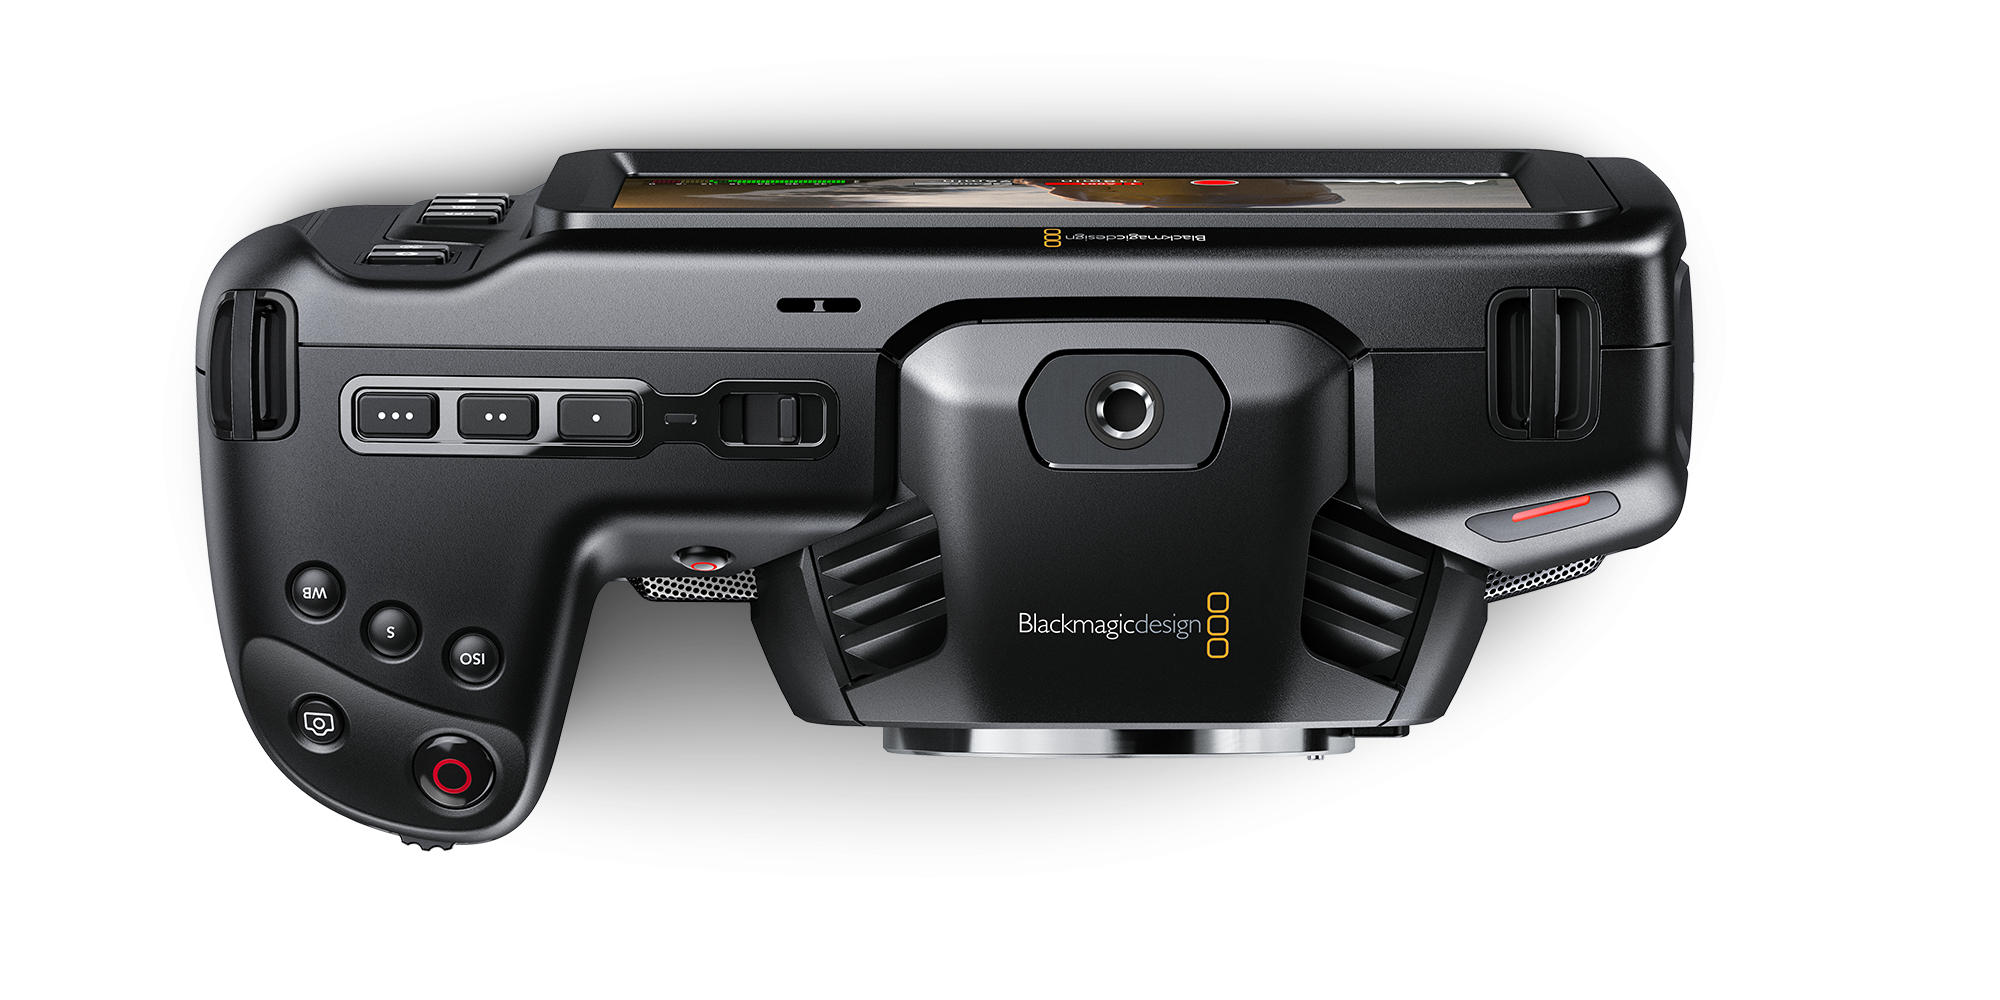 blackmagic-design-pocket-cinema-camera-4k-4